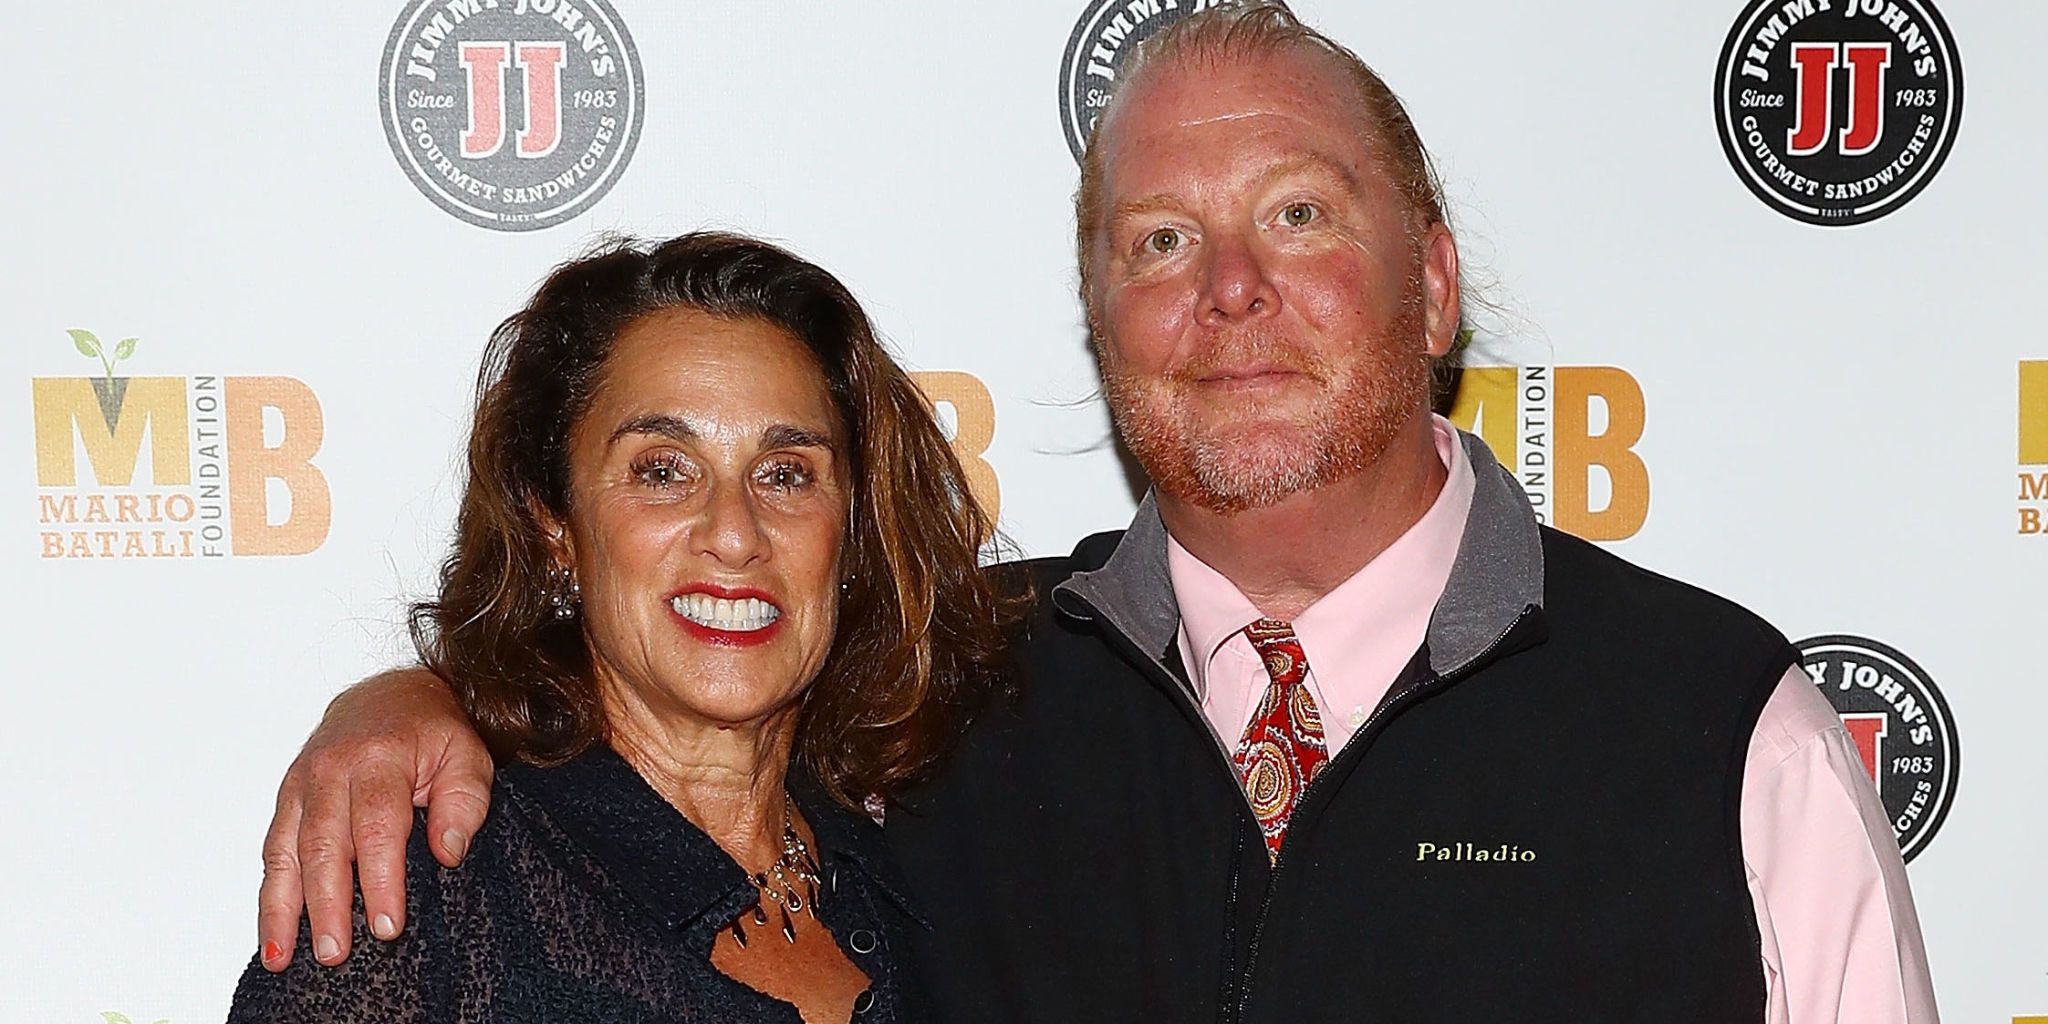 Who Is Mario Batalis Wife Who Is Susan Cahn